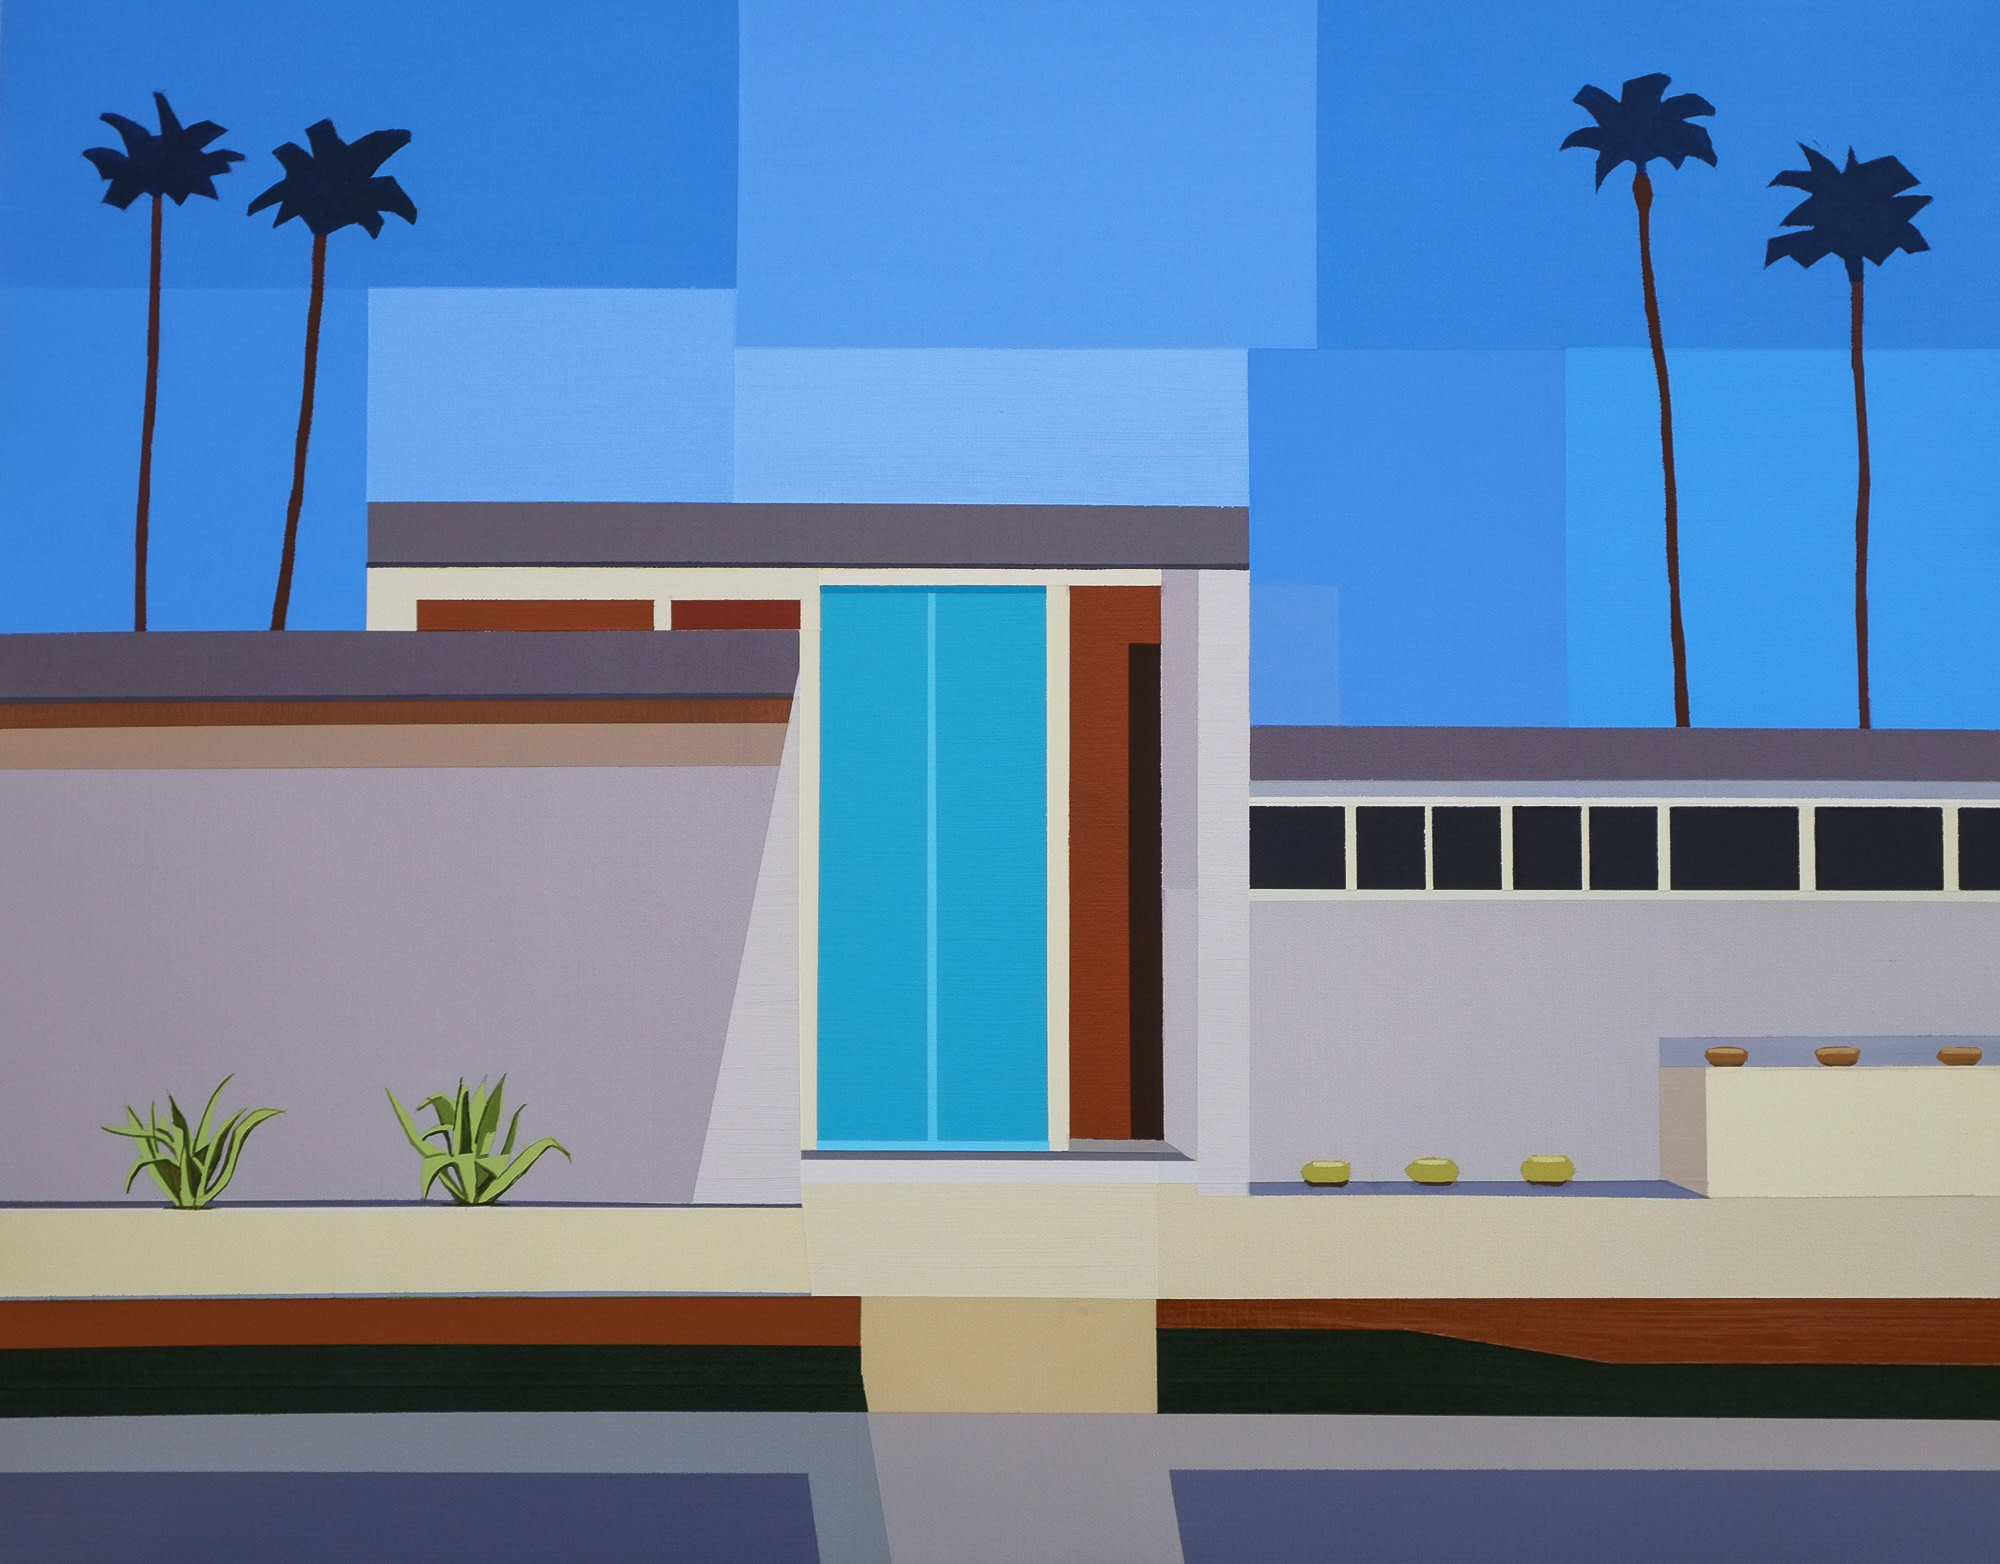 "<span class=""link fancybox-details-link""><a href=""/exhibitions/46/works/artworks3191/"">View Detail Page</a></span><div class=""artist""><strong>Andy Burgess</strong></div><div class=""title""><em>Palm Springs House III</em>, 2017</div><div class=""signed_and_dated"">Signed, dated recto</div><div class=""medium"">Acrylic on Canvas over Panel</div><div class=""dimensions"">Unframed: 22 x 28 in.<br>Framed: 23 1/2 x 29 1/2 in.</div>"